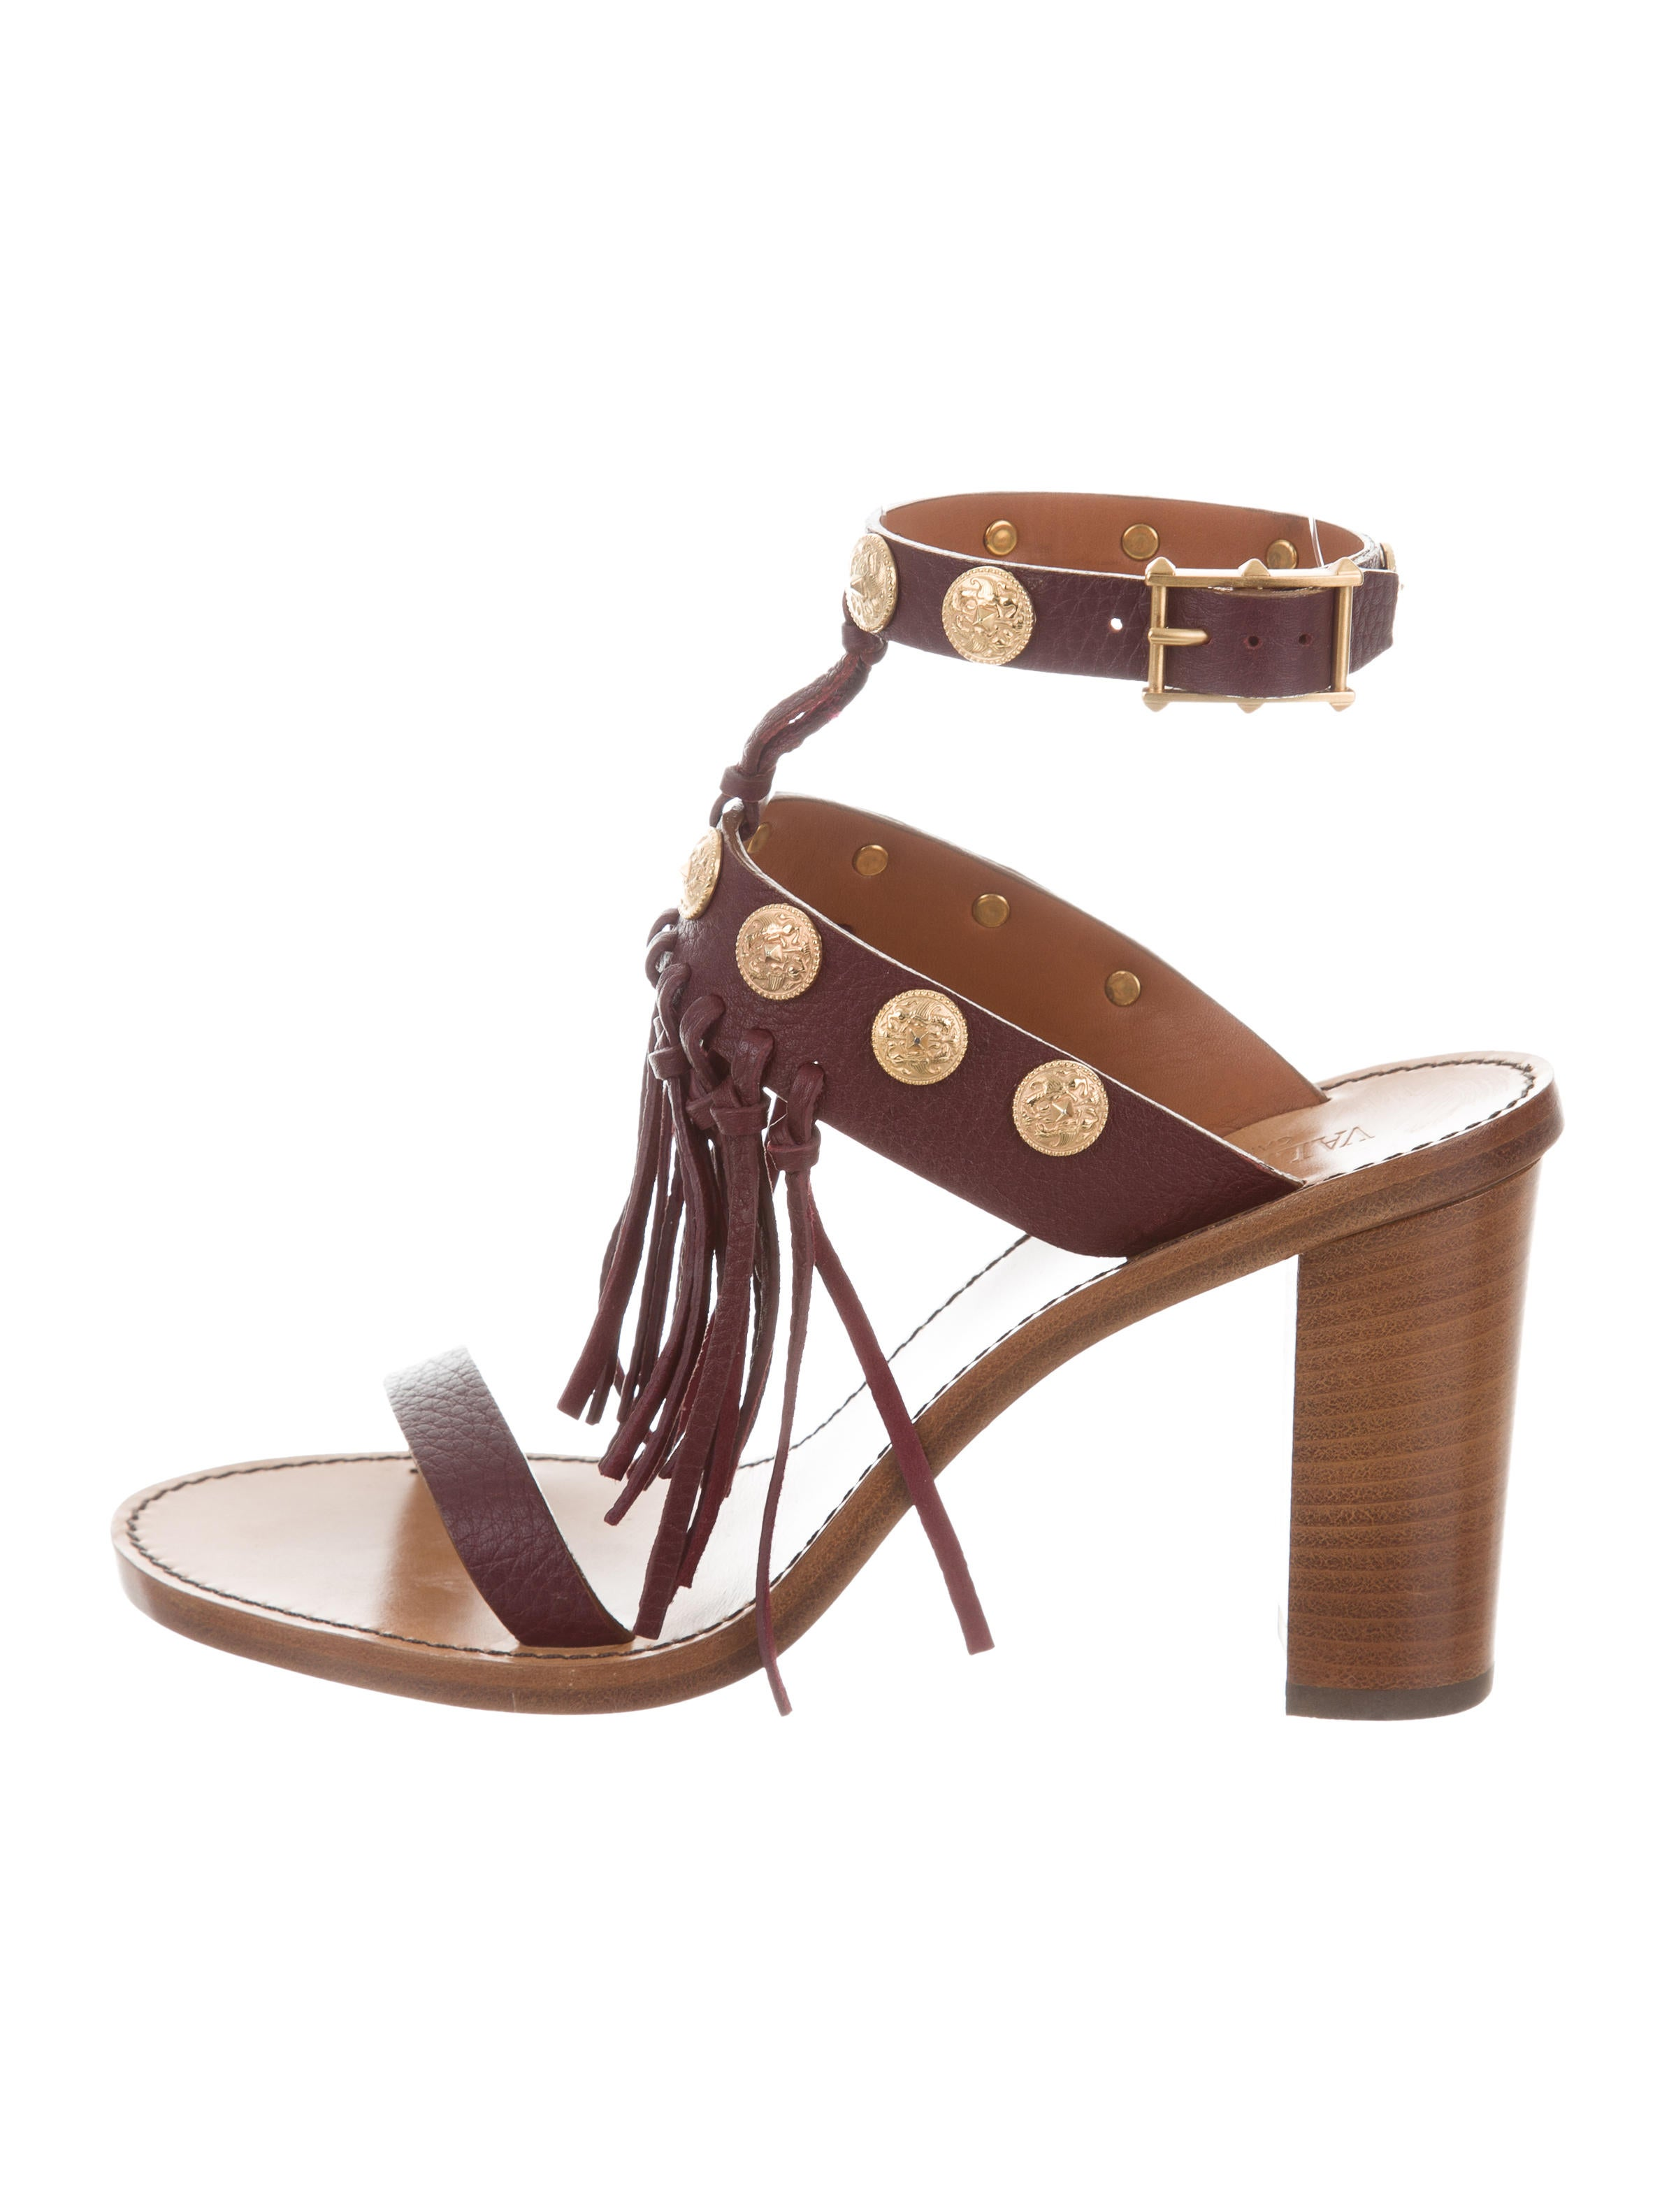 Valentino Rockstud Medallion Sandals from china free shipping low price zww6C5GU